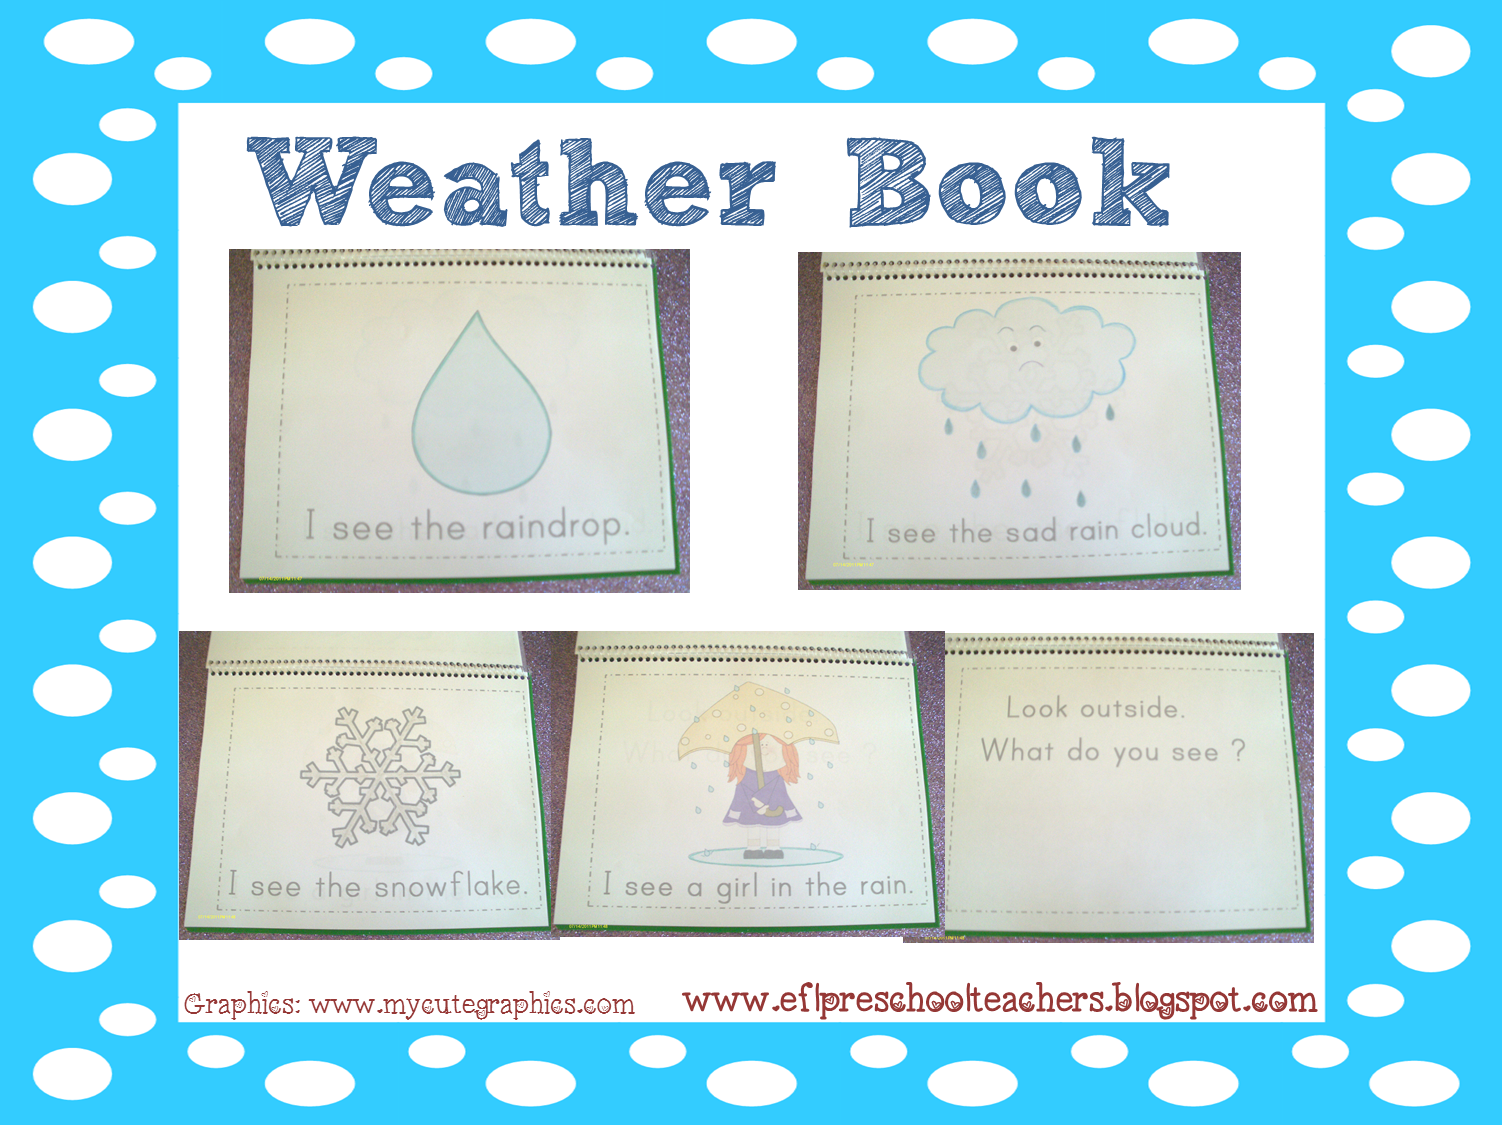 Esl Efl Preschool Teachers Weather Theme Resources For The Ell